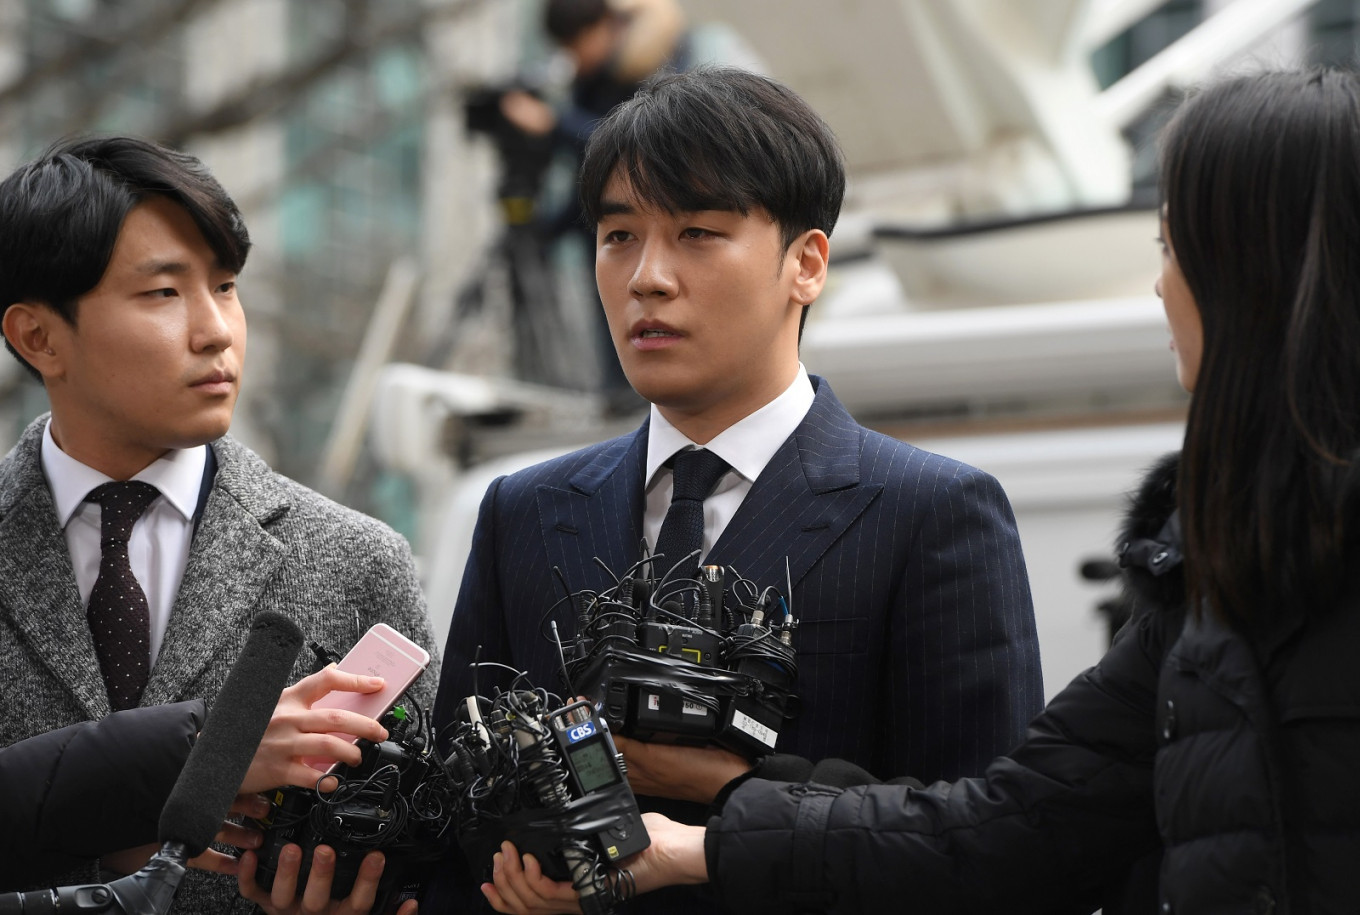 Seungri on a press conference over criminal allegations